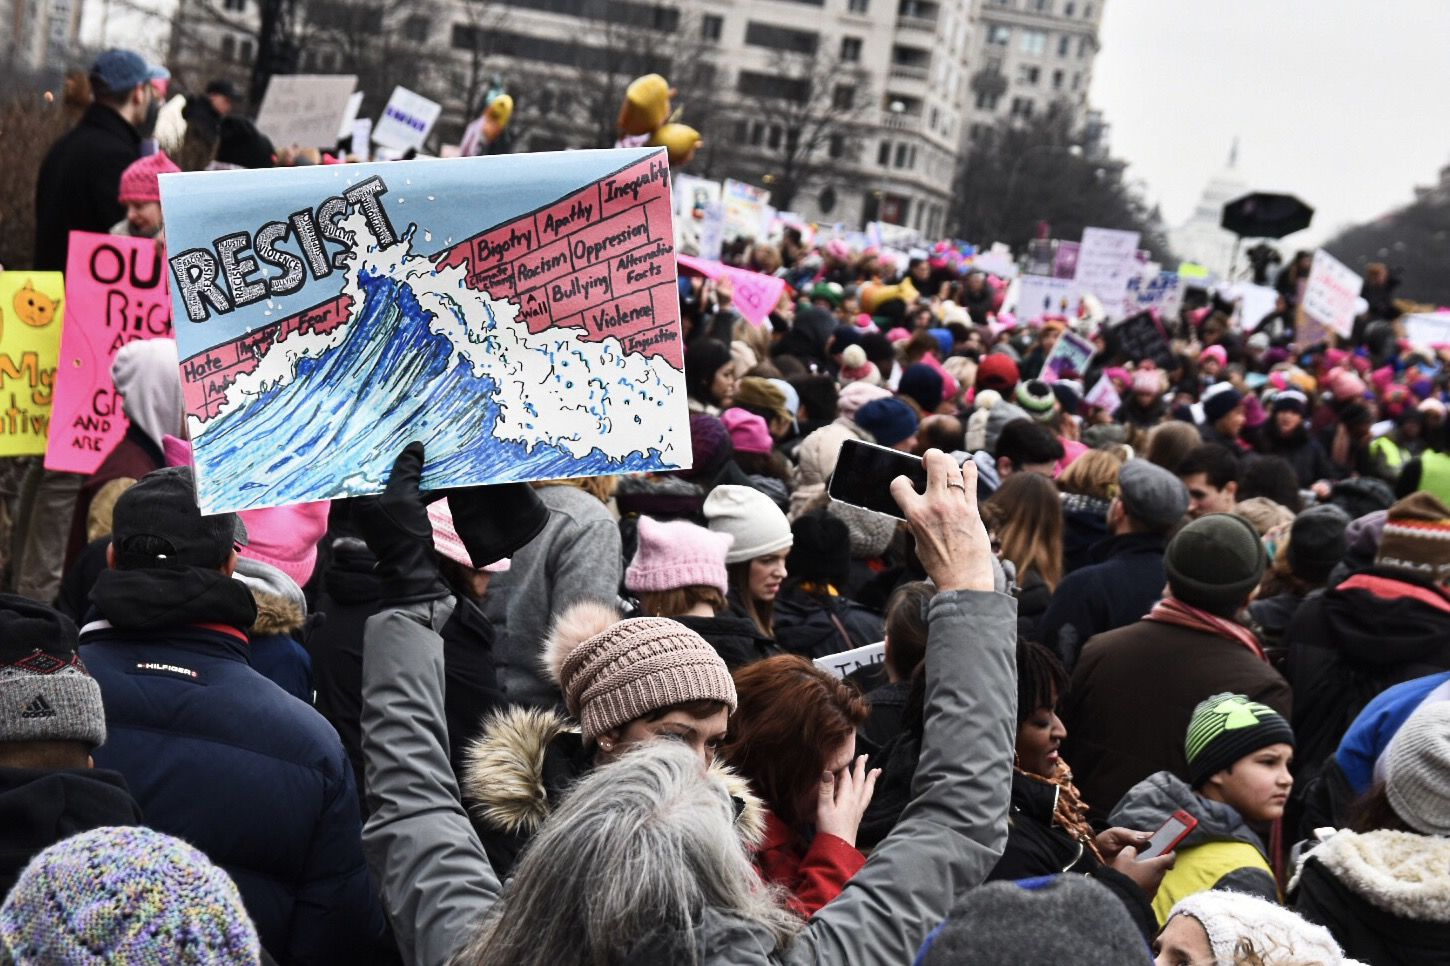 A Women's March protester holds a sign with a blue wave, a common trope signifying Democratic victory in the run-up to the 2018 election. (WTOP/Alejandro Alvarez)